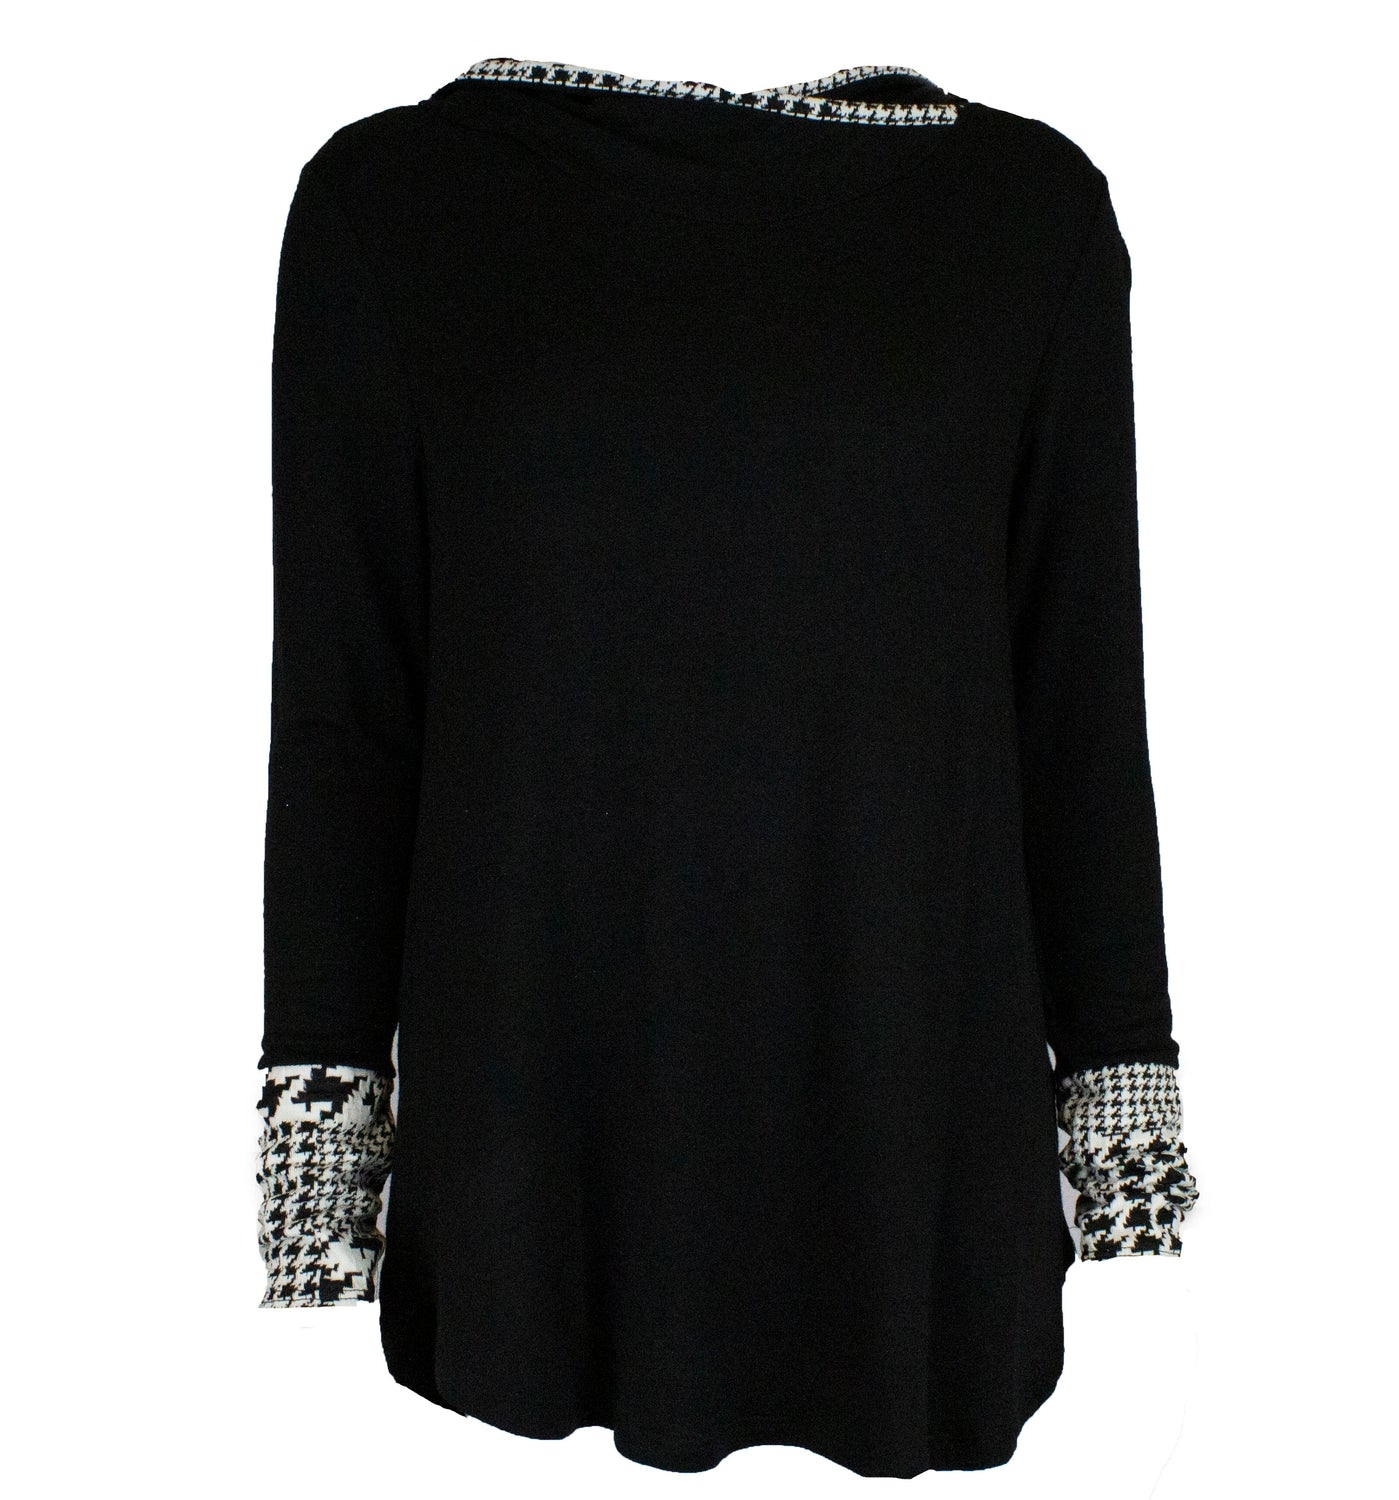 lightweight black sweater with a hood and white and black detailing on the sleeves